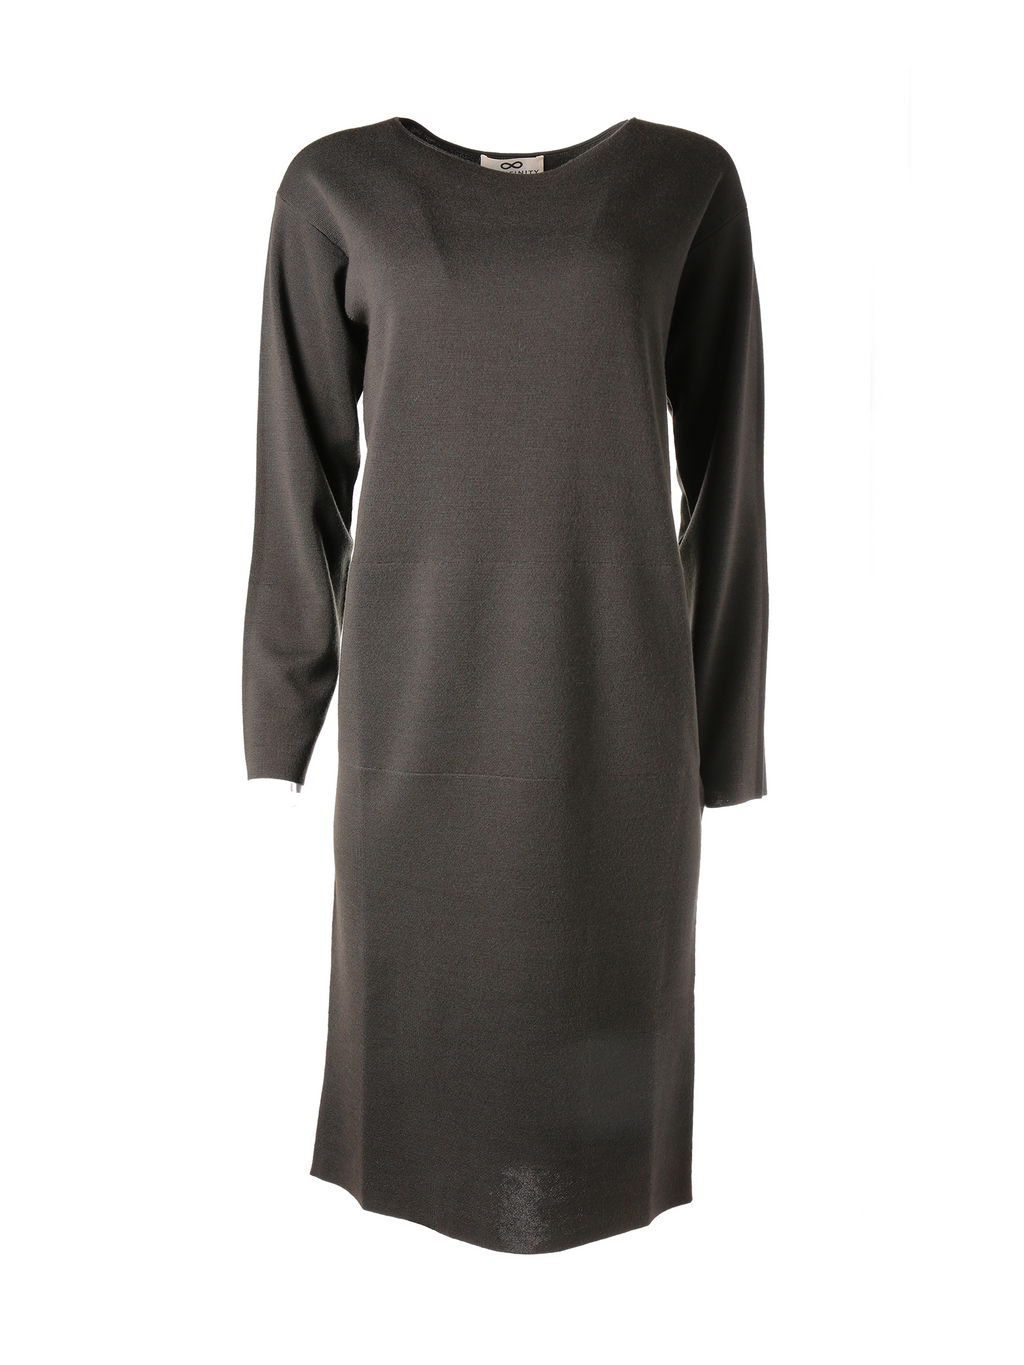 Sminfinity Long Sleeve Sweater Dress